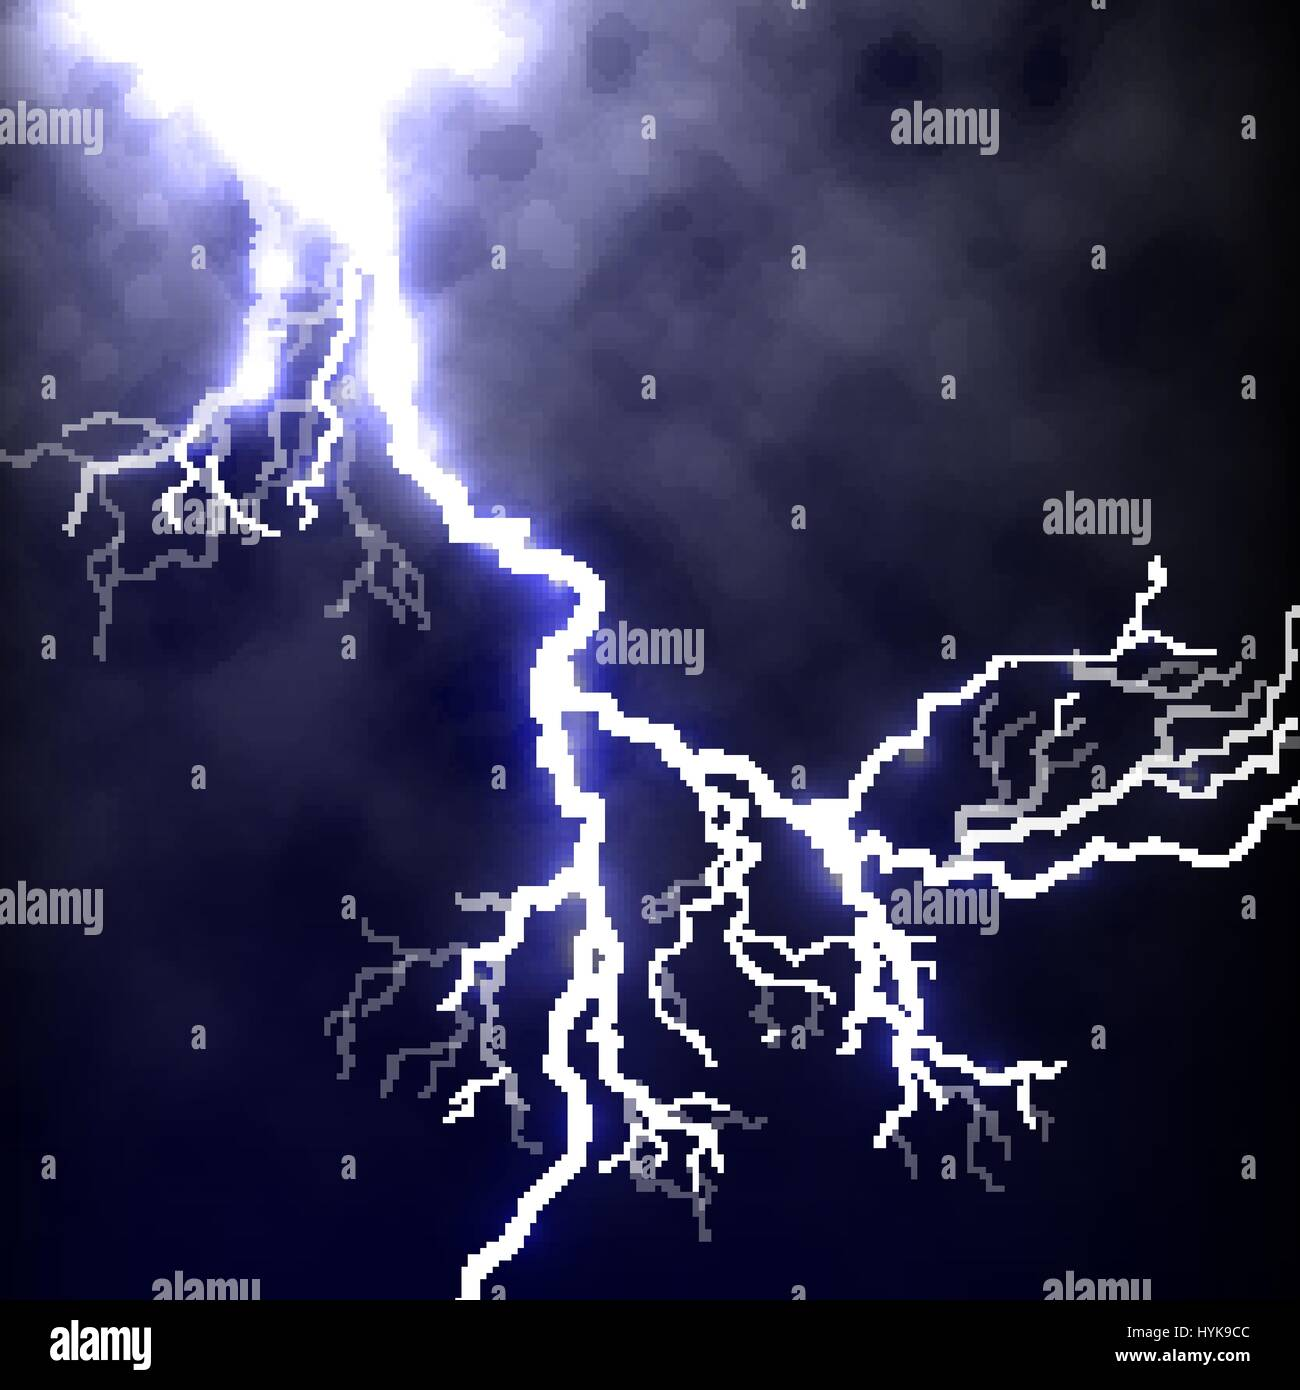 Powerful Storm Stock Vector Images - Alamy